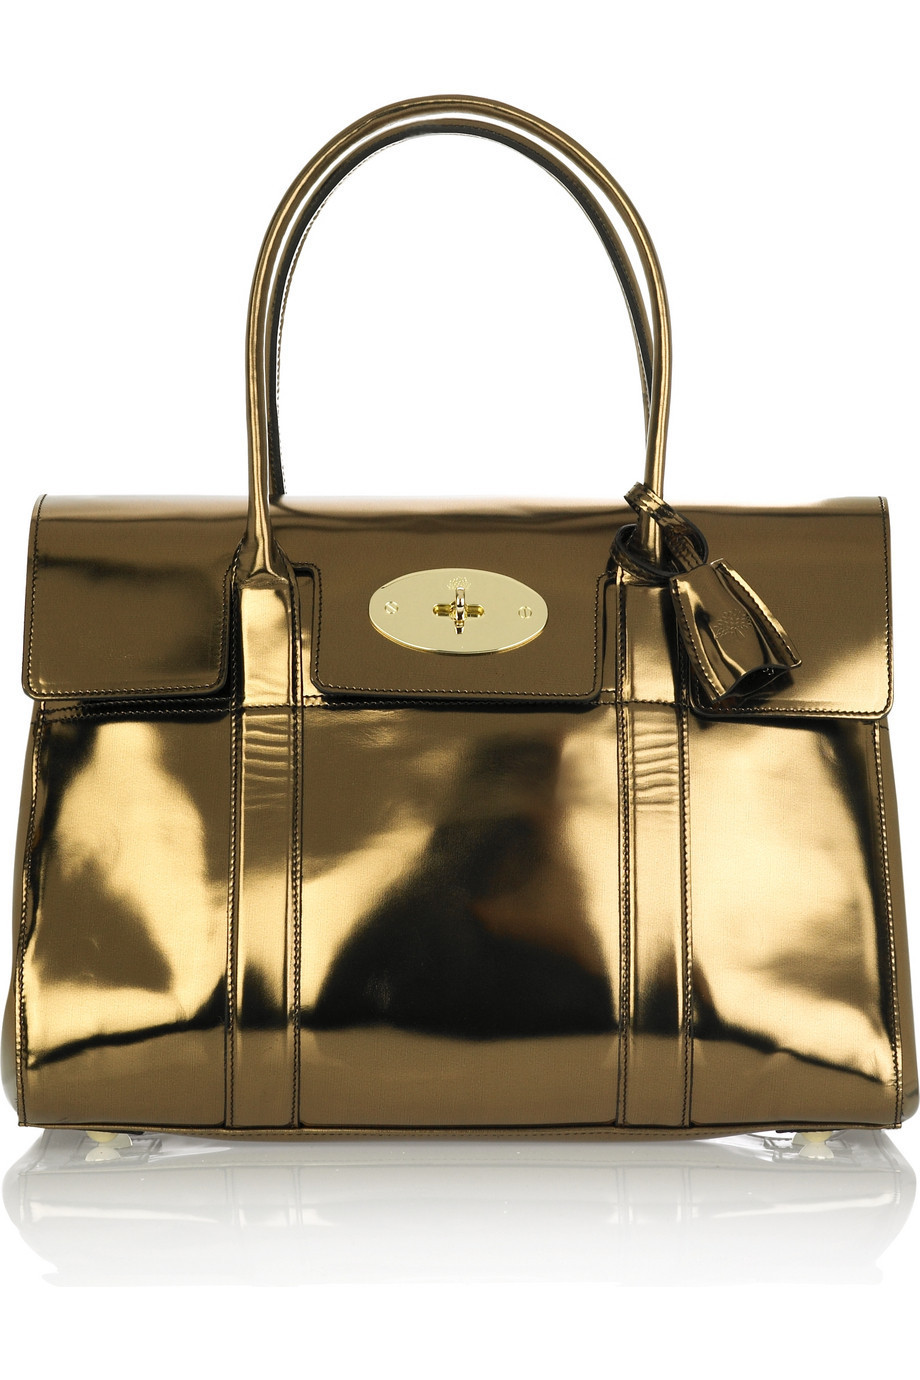 Mulberry Mirrored Bayswater bag | NET-A-PORTER.COM from net-a-porter.com